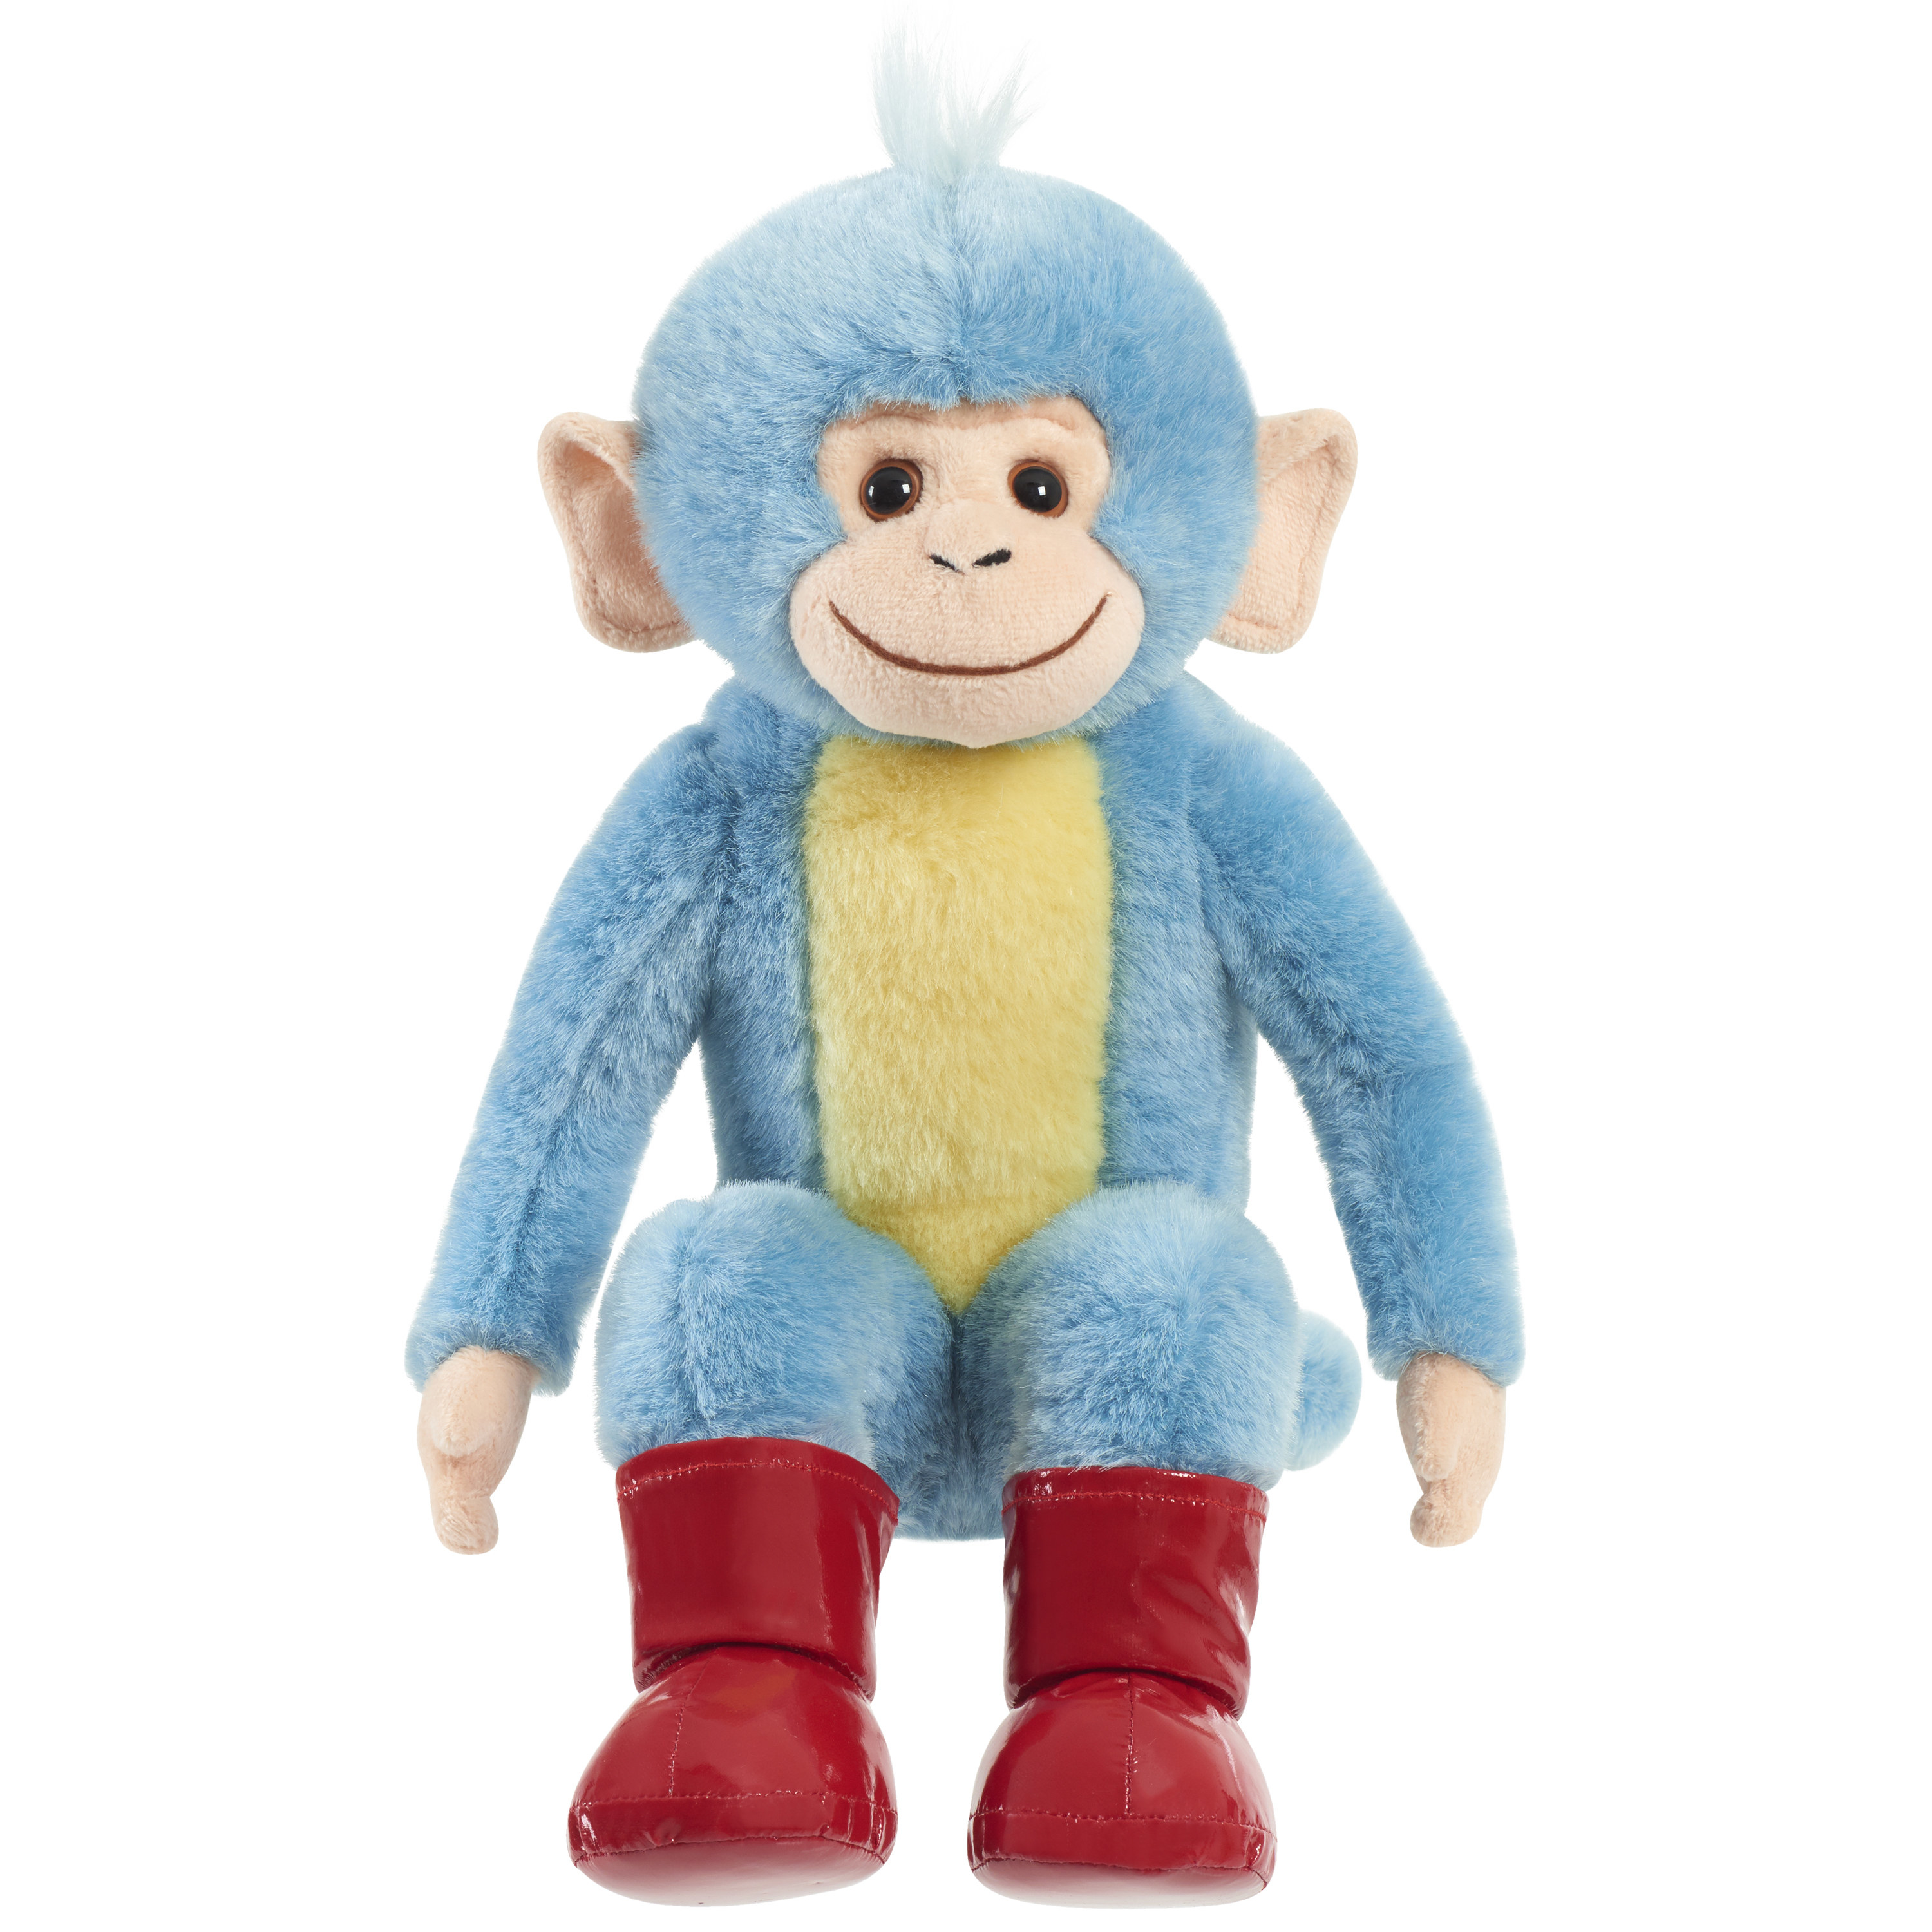 plush toy of a blue and yellow monkey with red boots